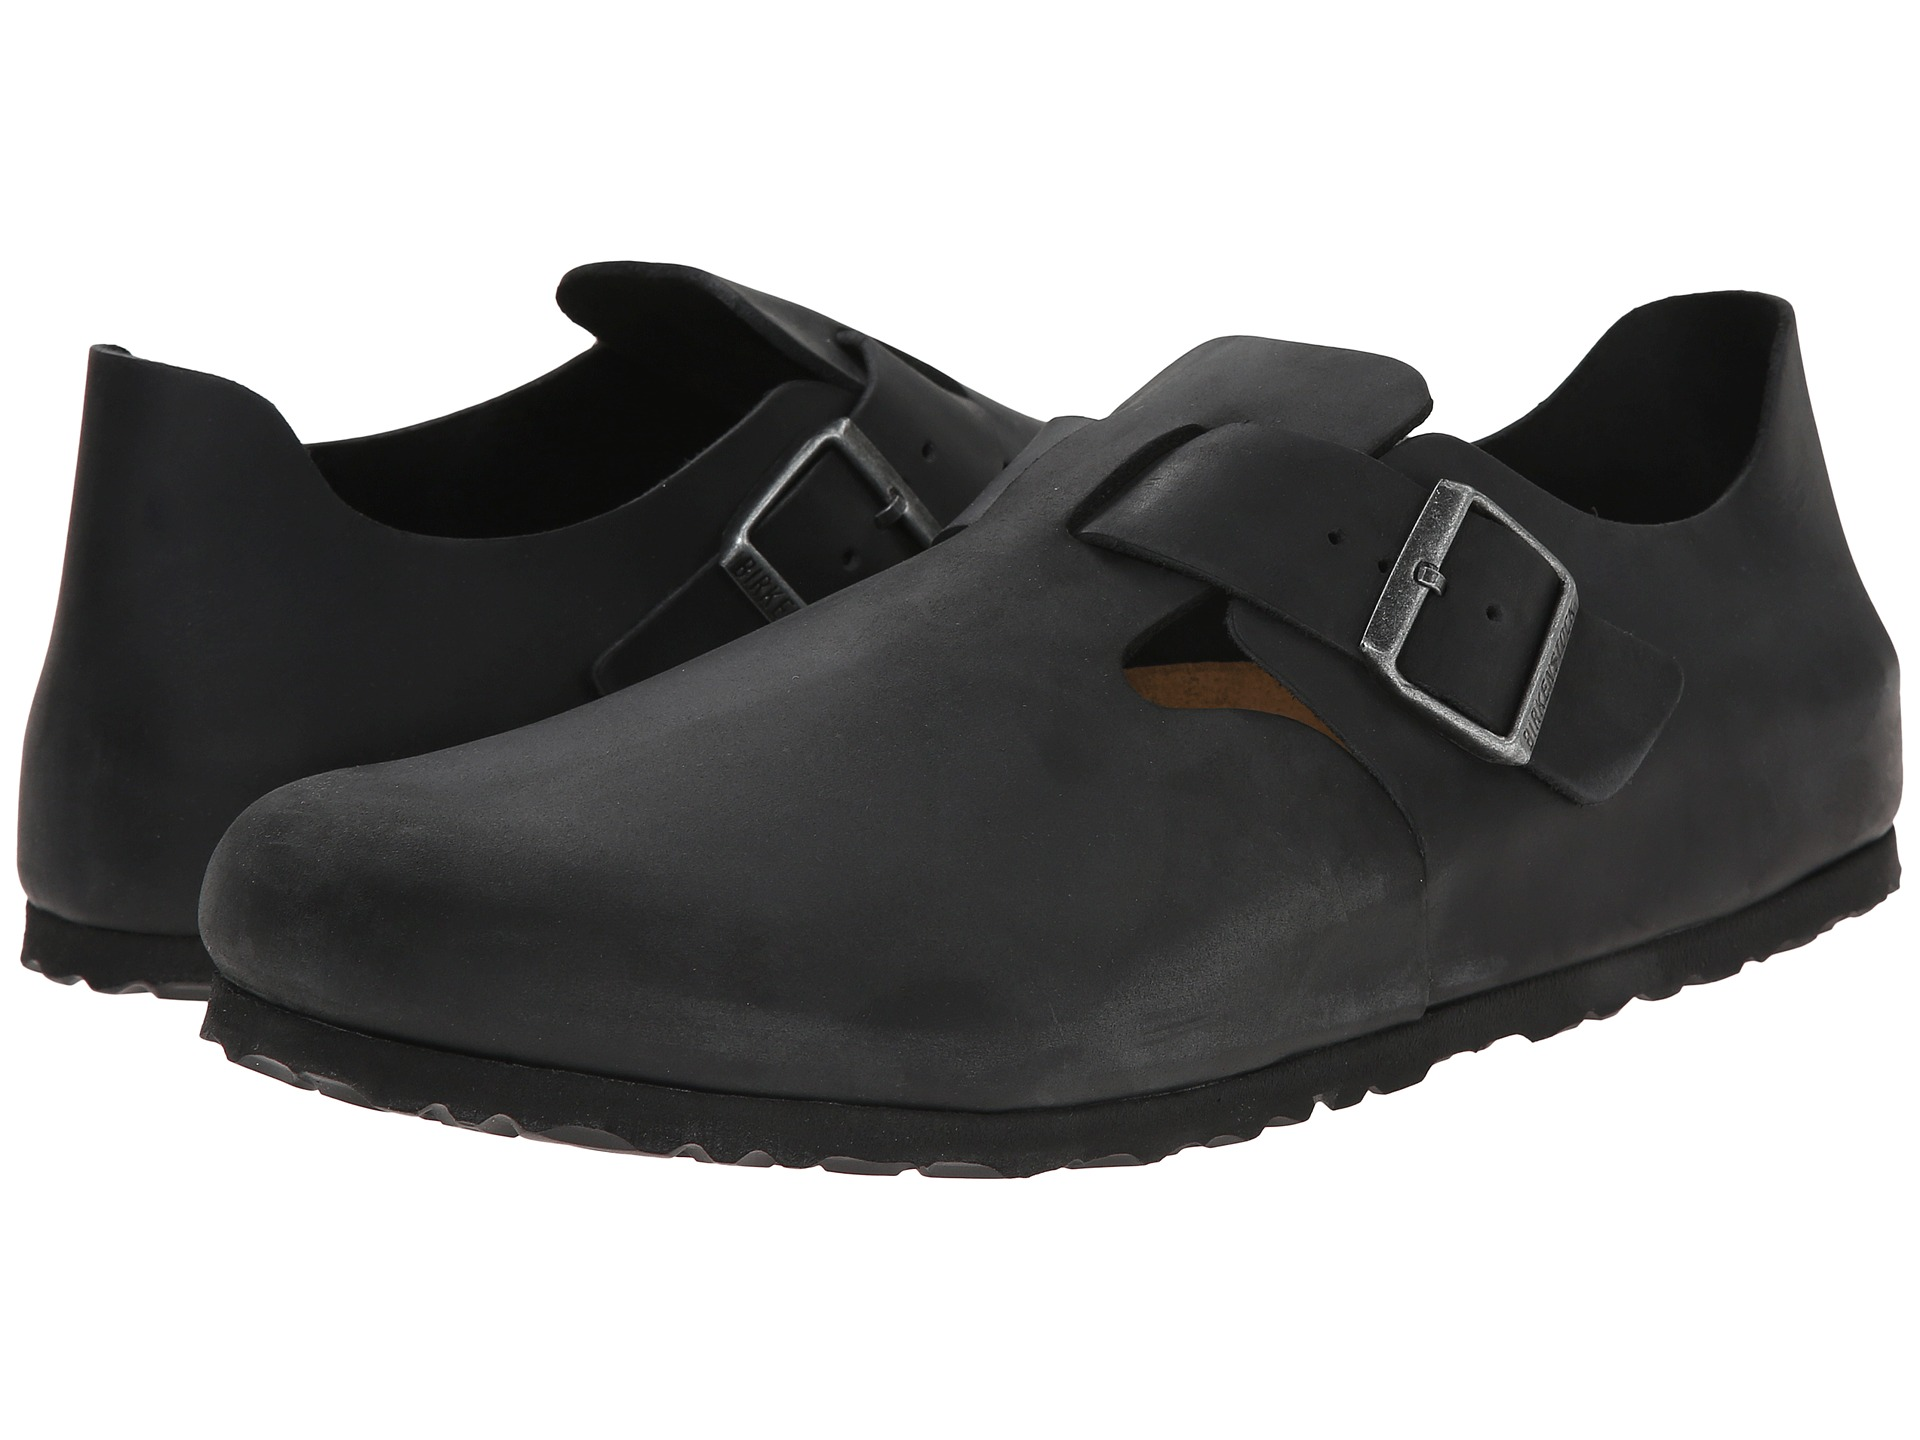 Birkenstock London Leather Shoe